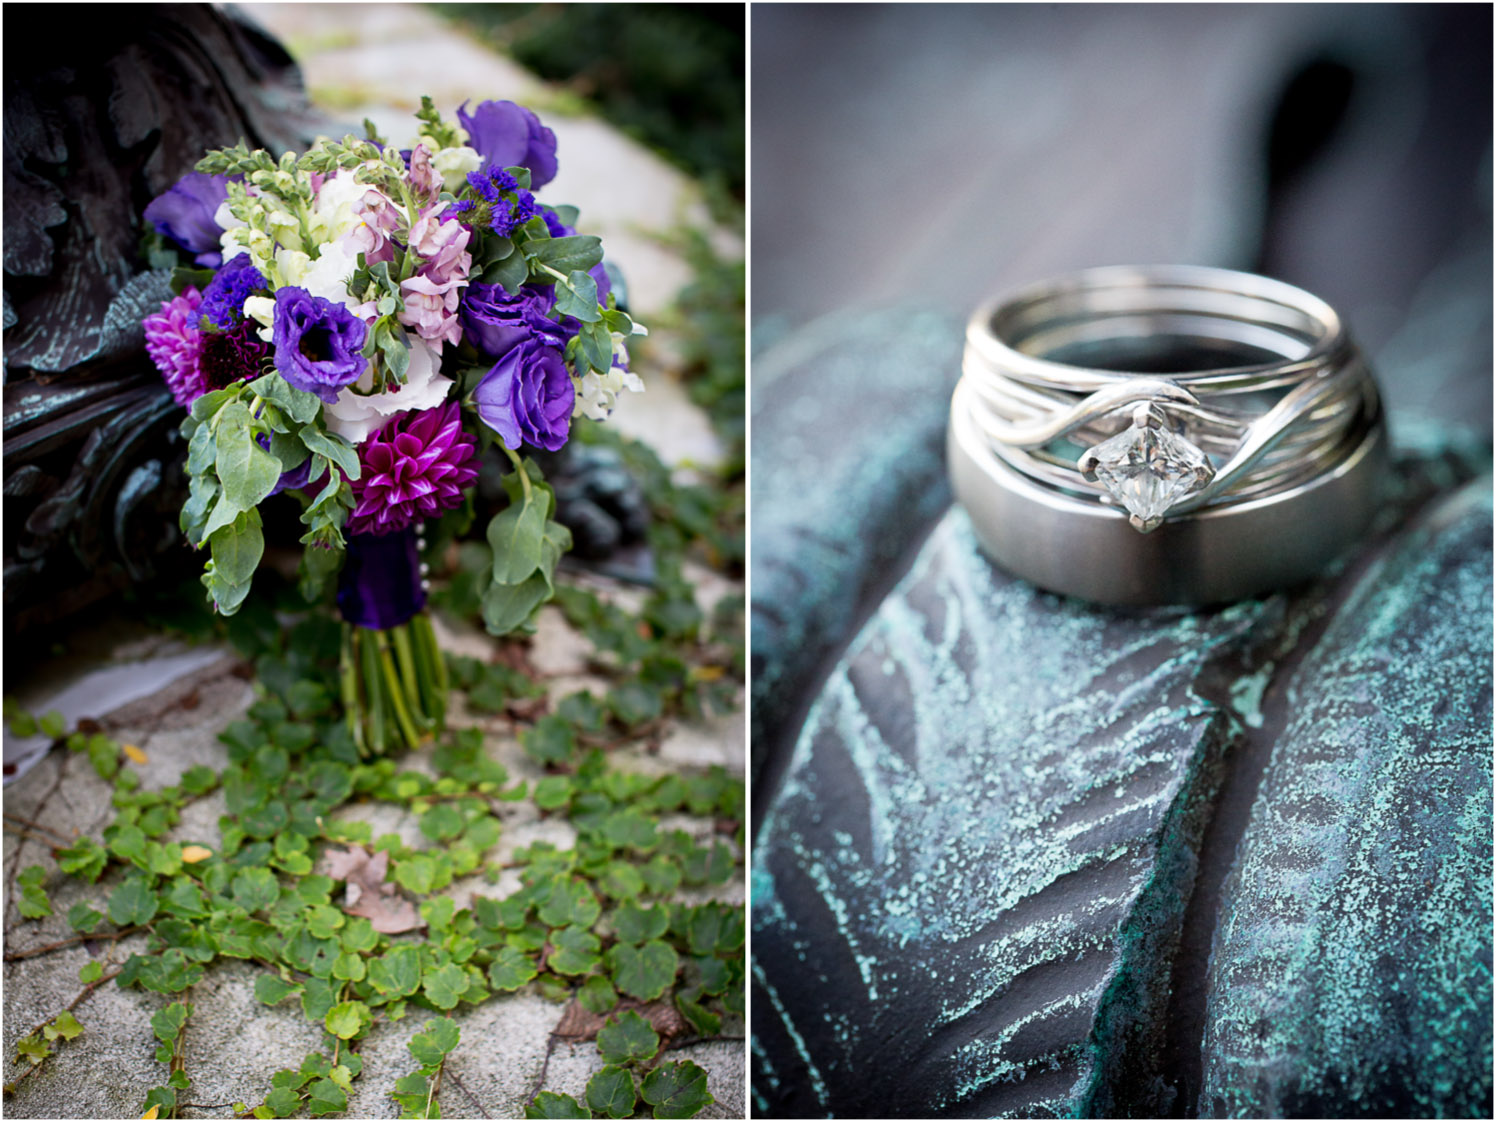 20-university-of-minnesota-campus-club-wedding-photographer-details-rings-bridal-bouquet-mahonen-photography.jpg